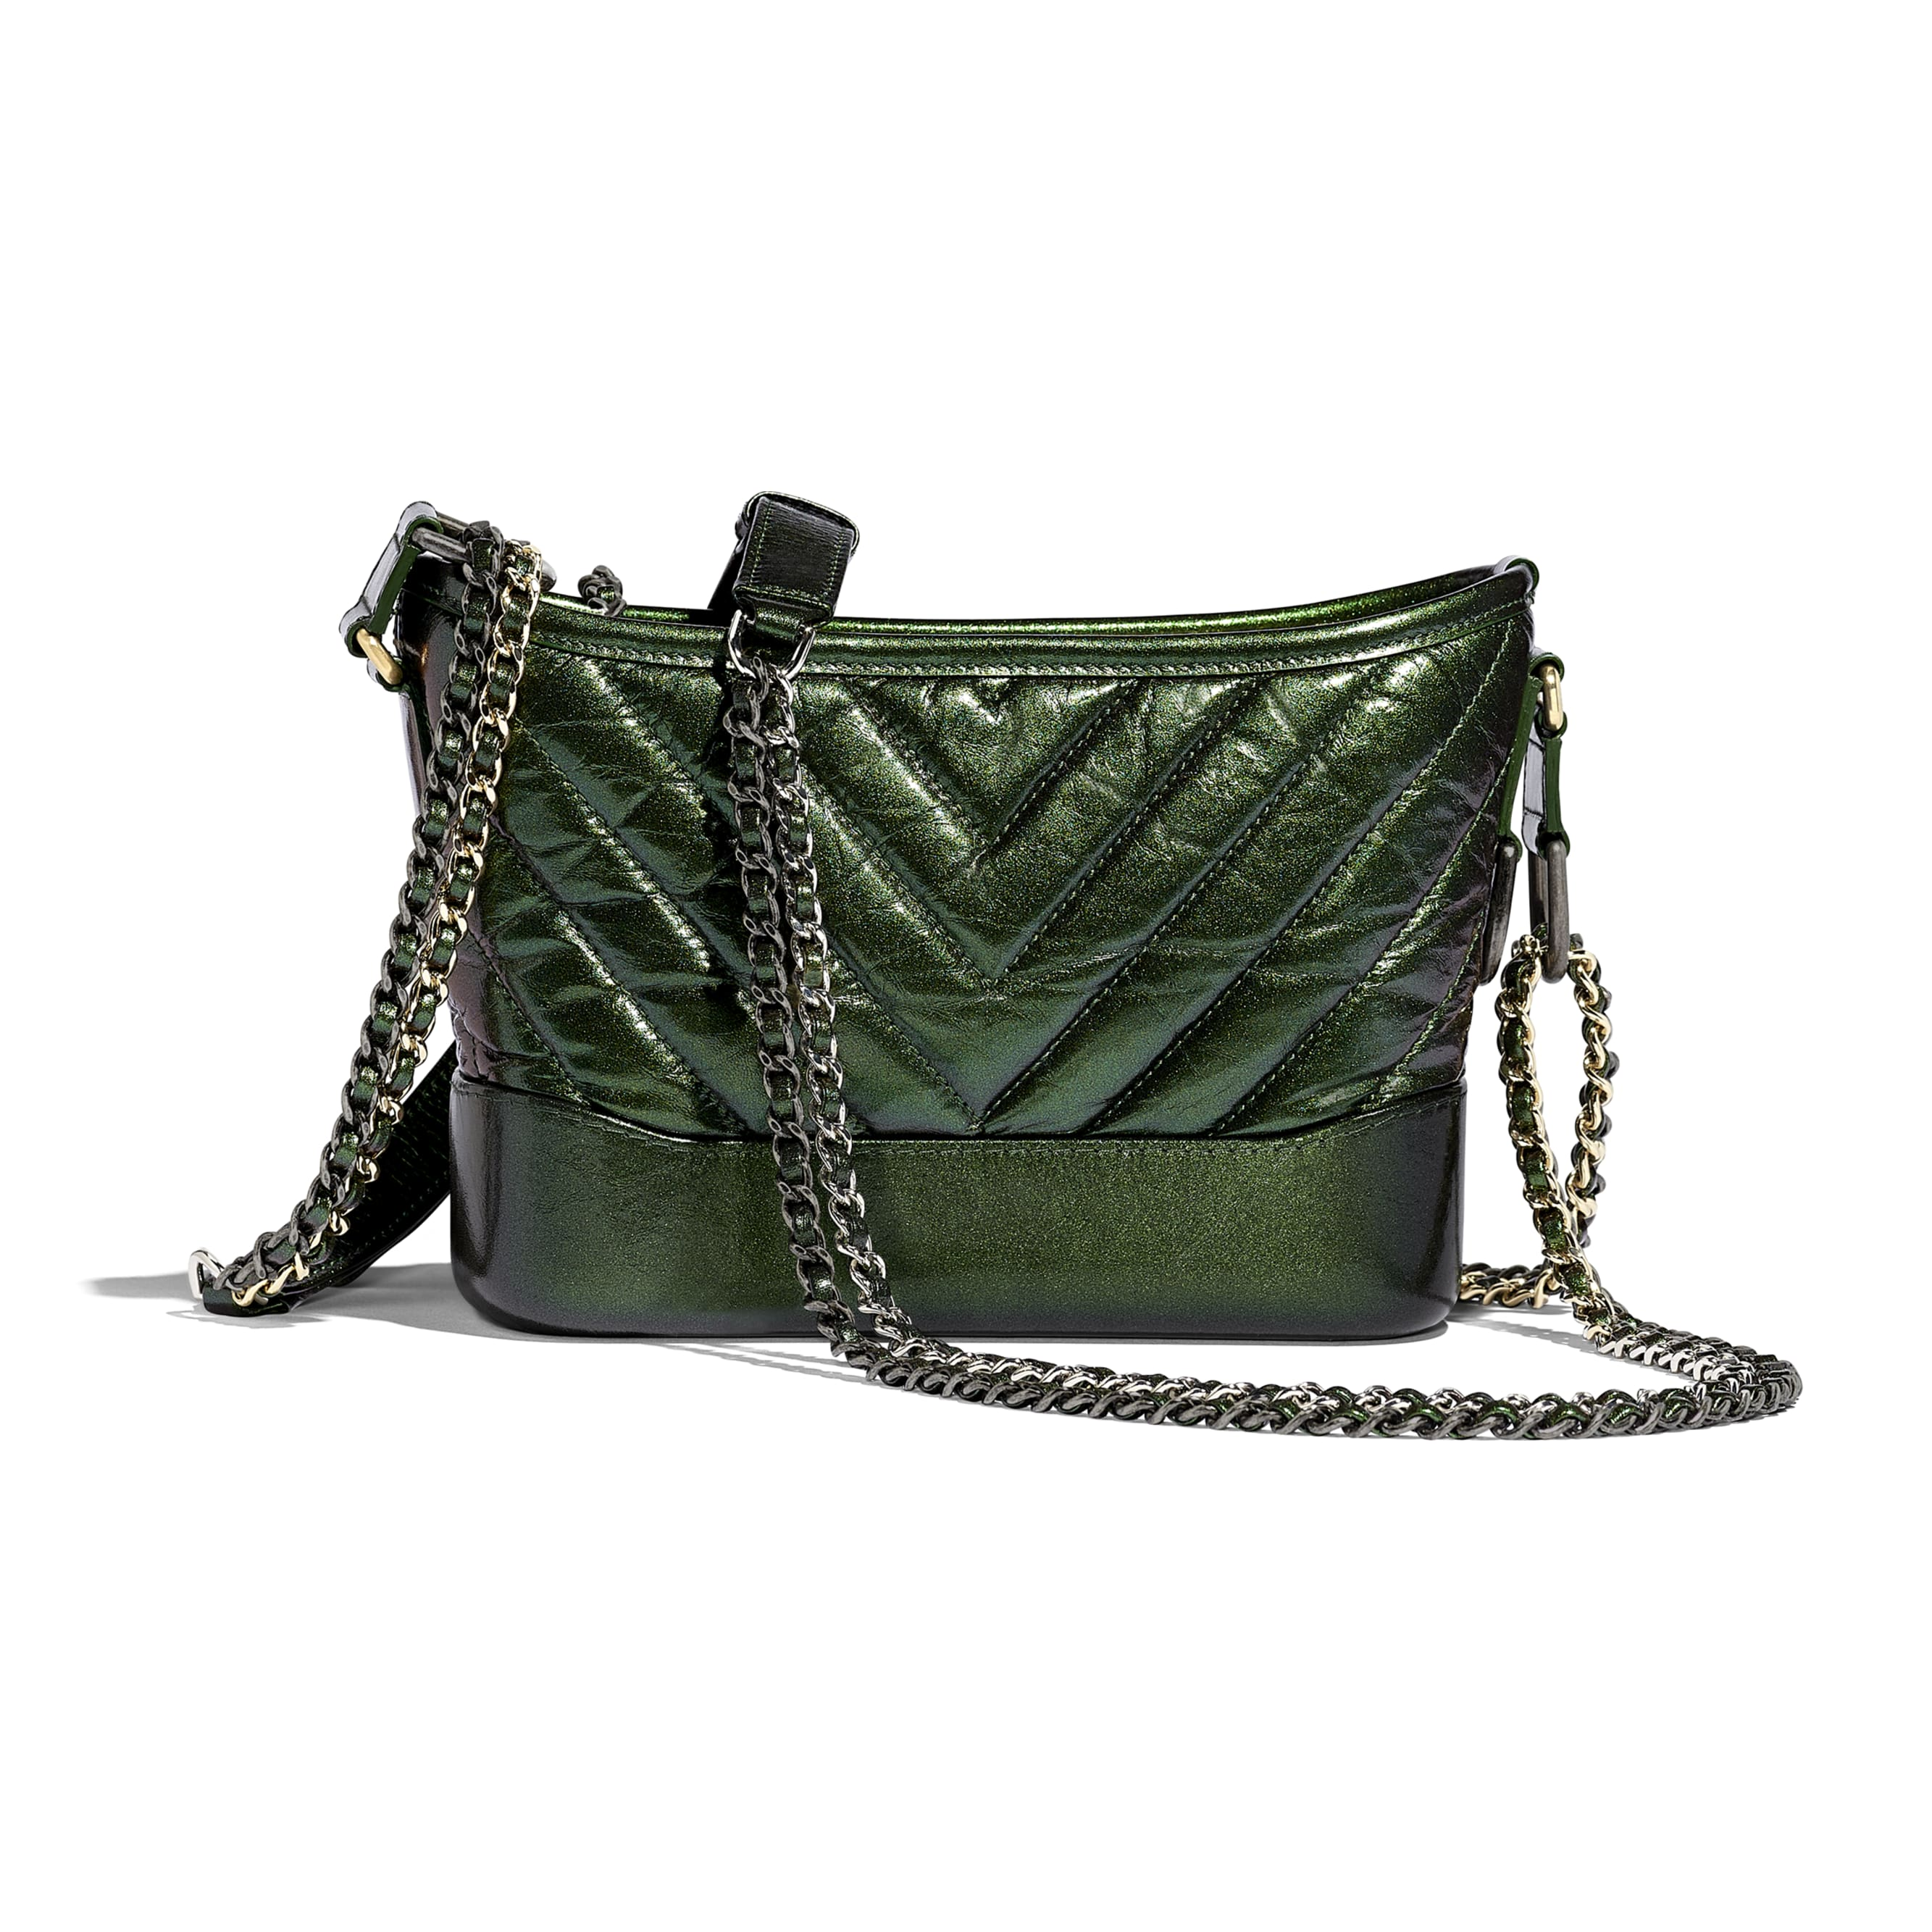 CHANEL'S GABRIELLE Small Hobo Bag - Green - Aged Calfskin, Silver-Tone & Gold-Tone Metal - Alternative view - see standard sized version